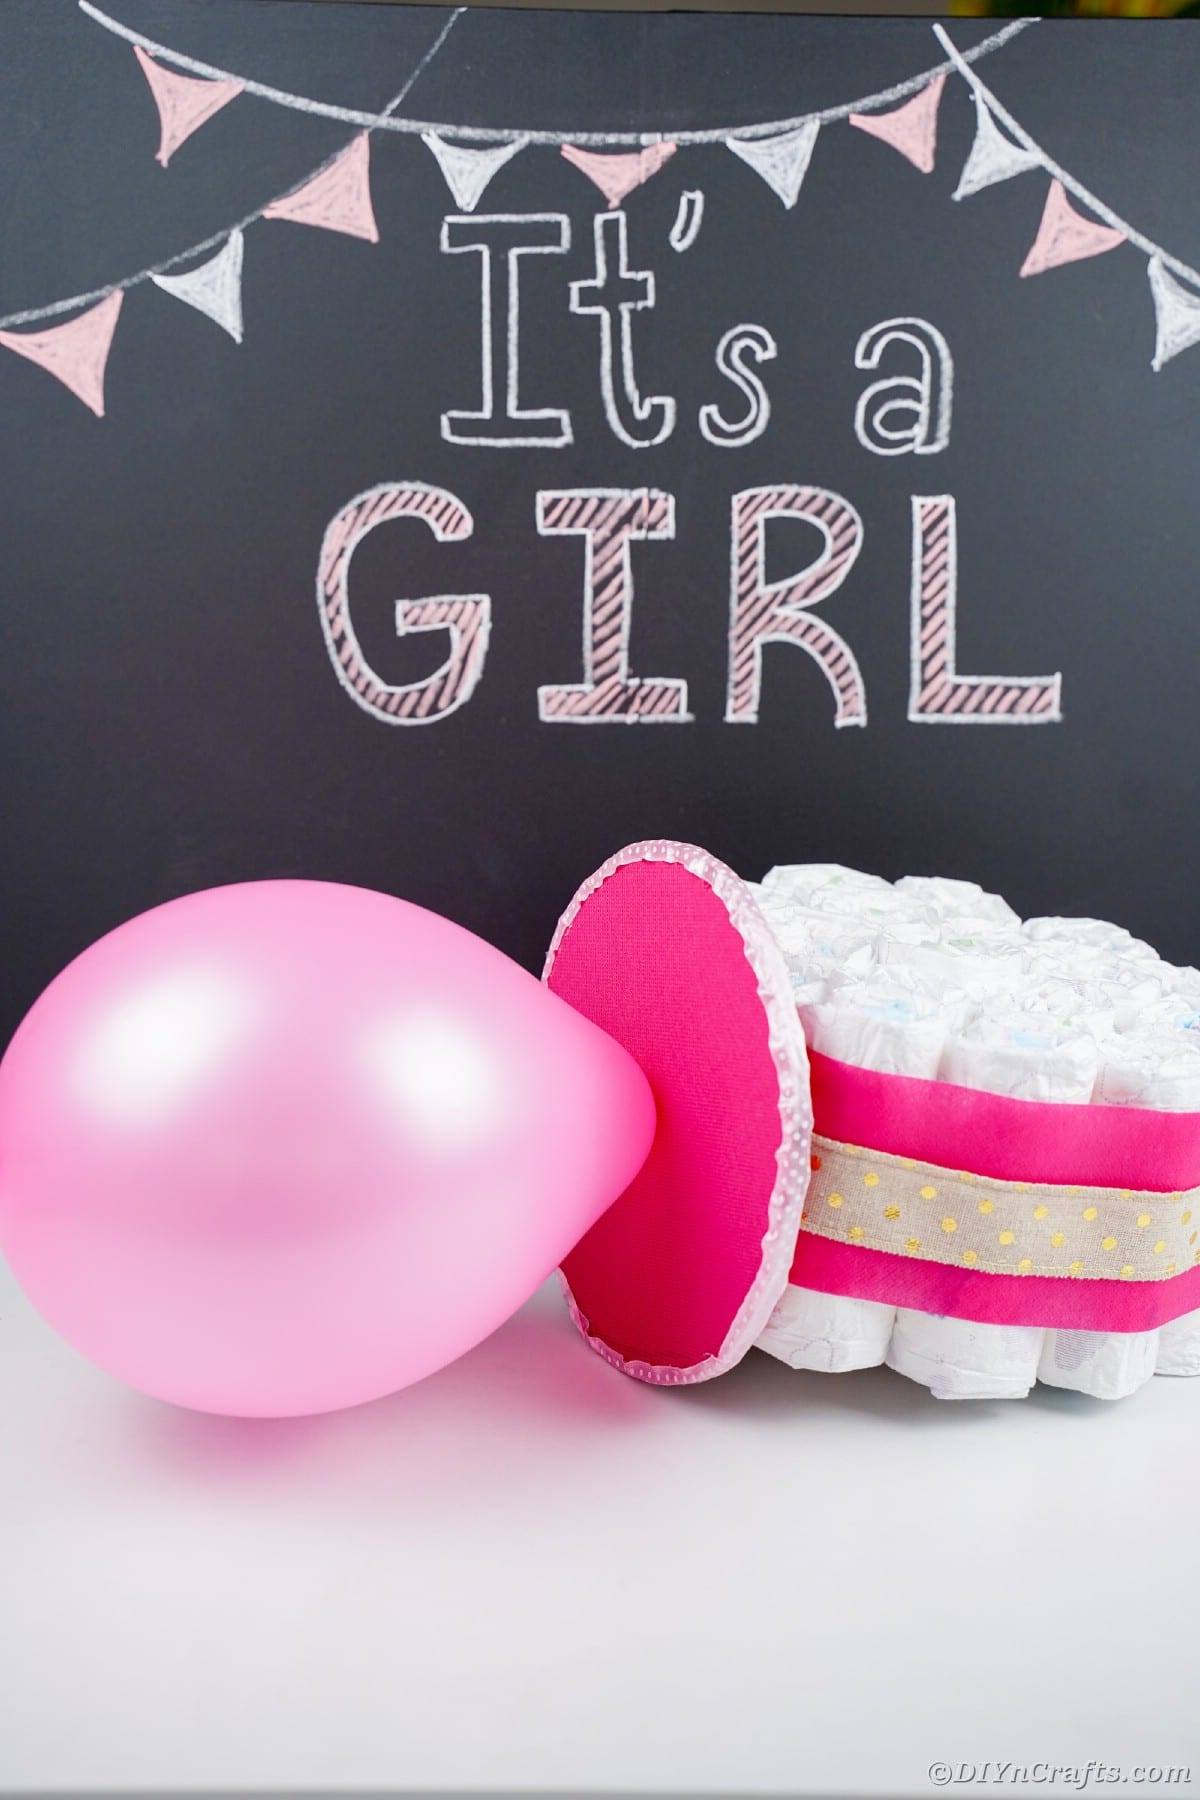 Pink balloon and diaper pacifier on table